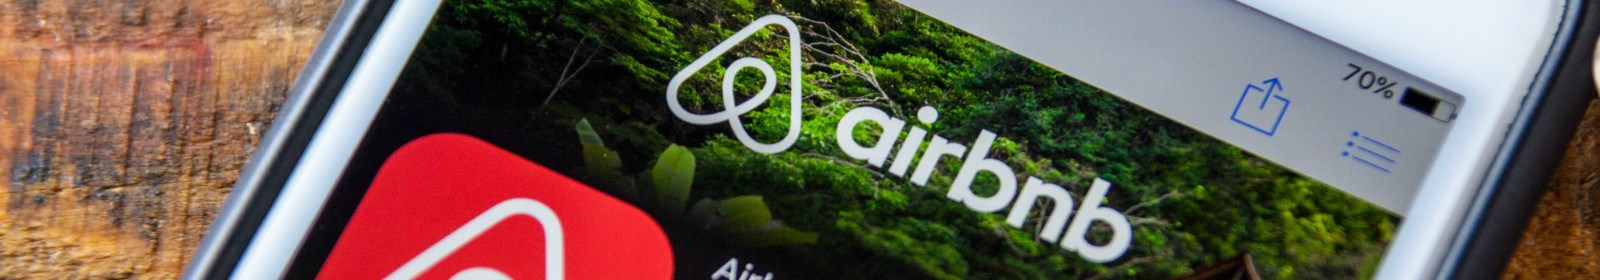 9 things to consider before becoming an Airbnb host